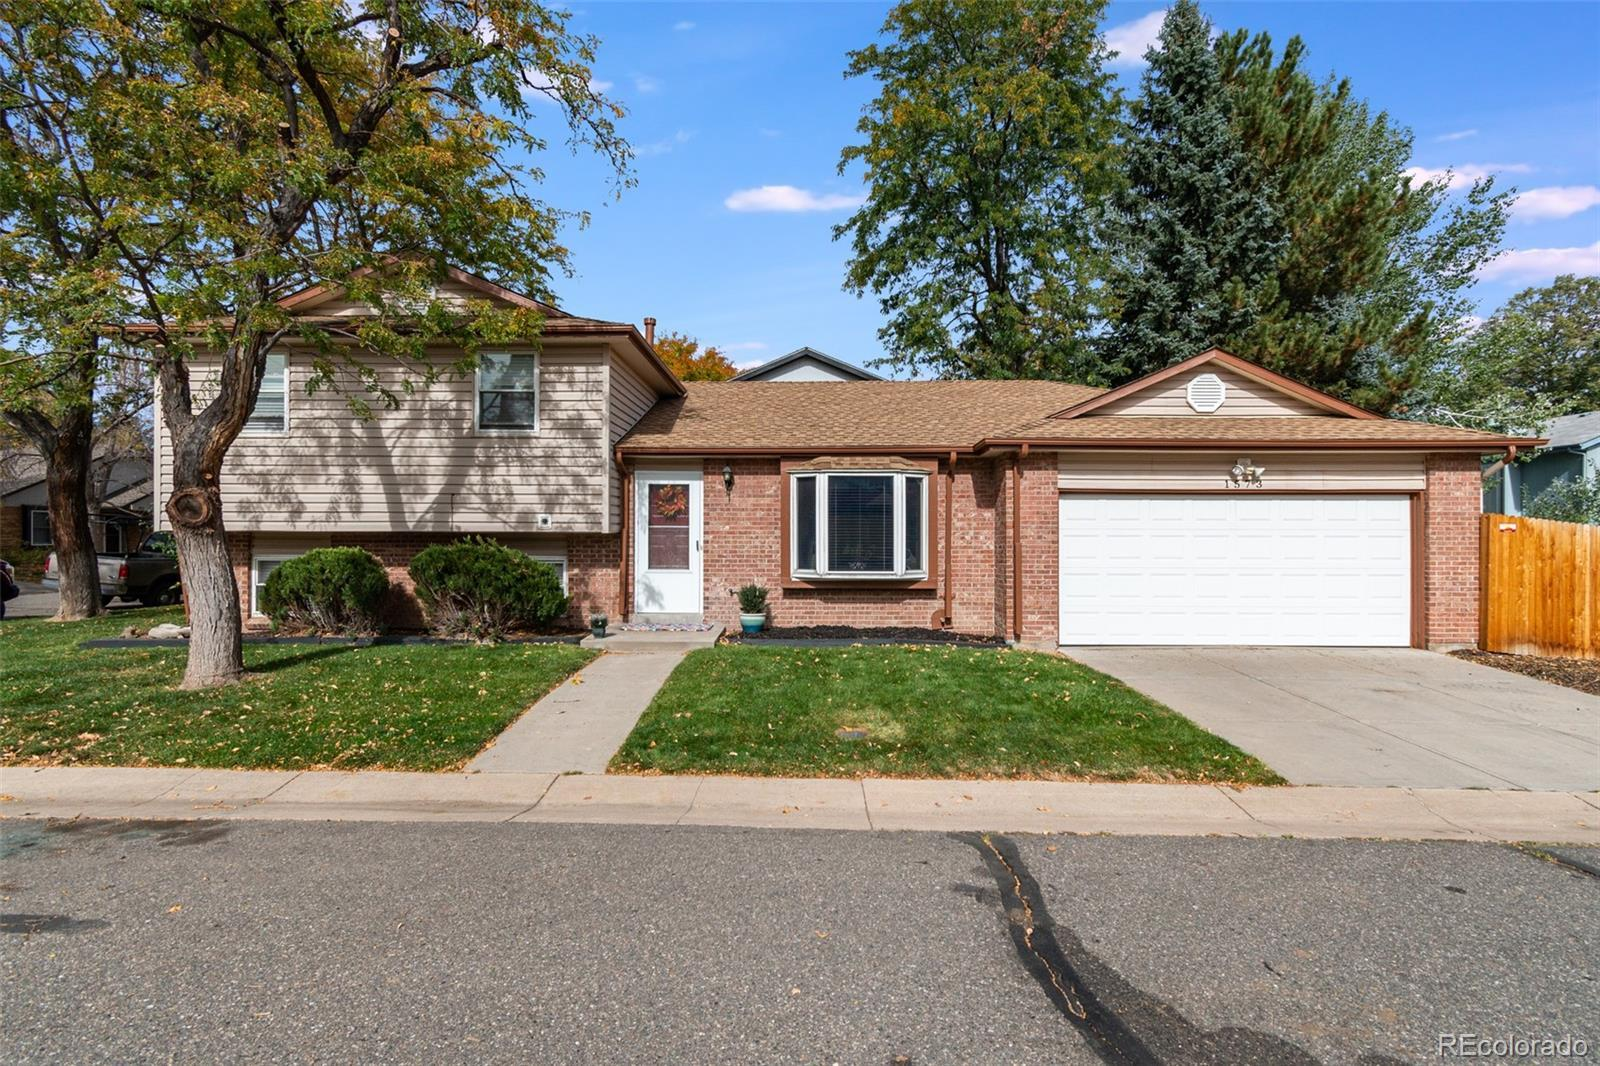 1573 S Krameria Street, Denver, CO 80224 - #: 8298533